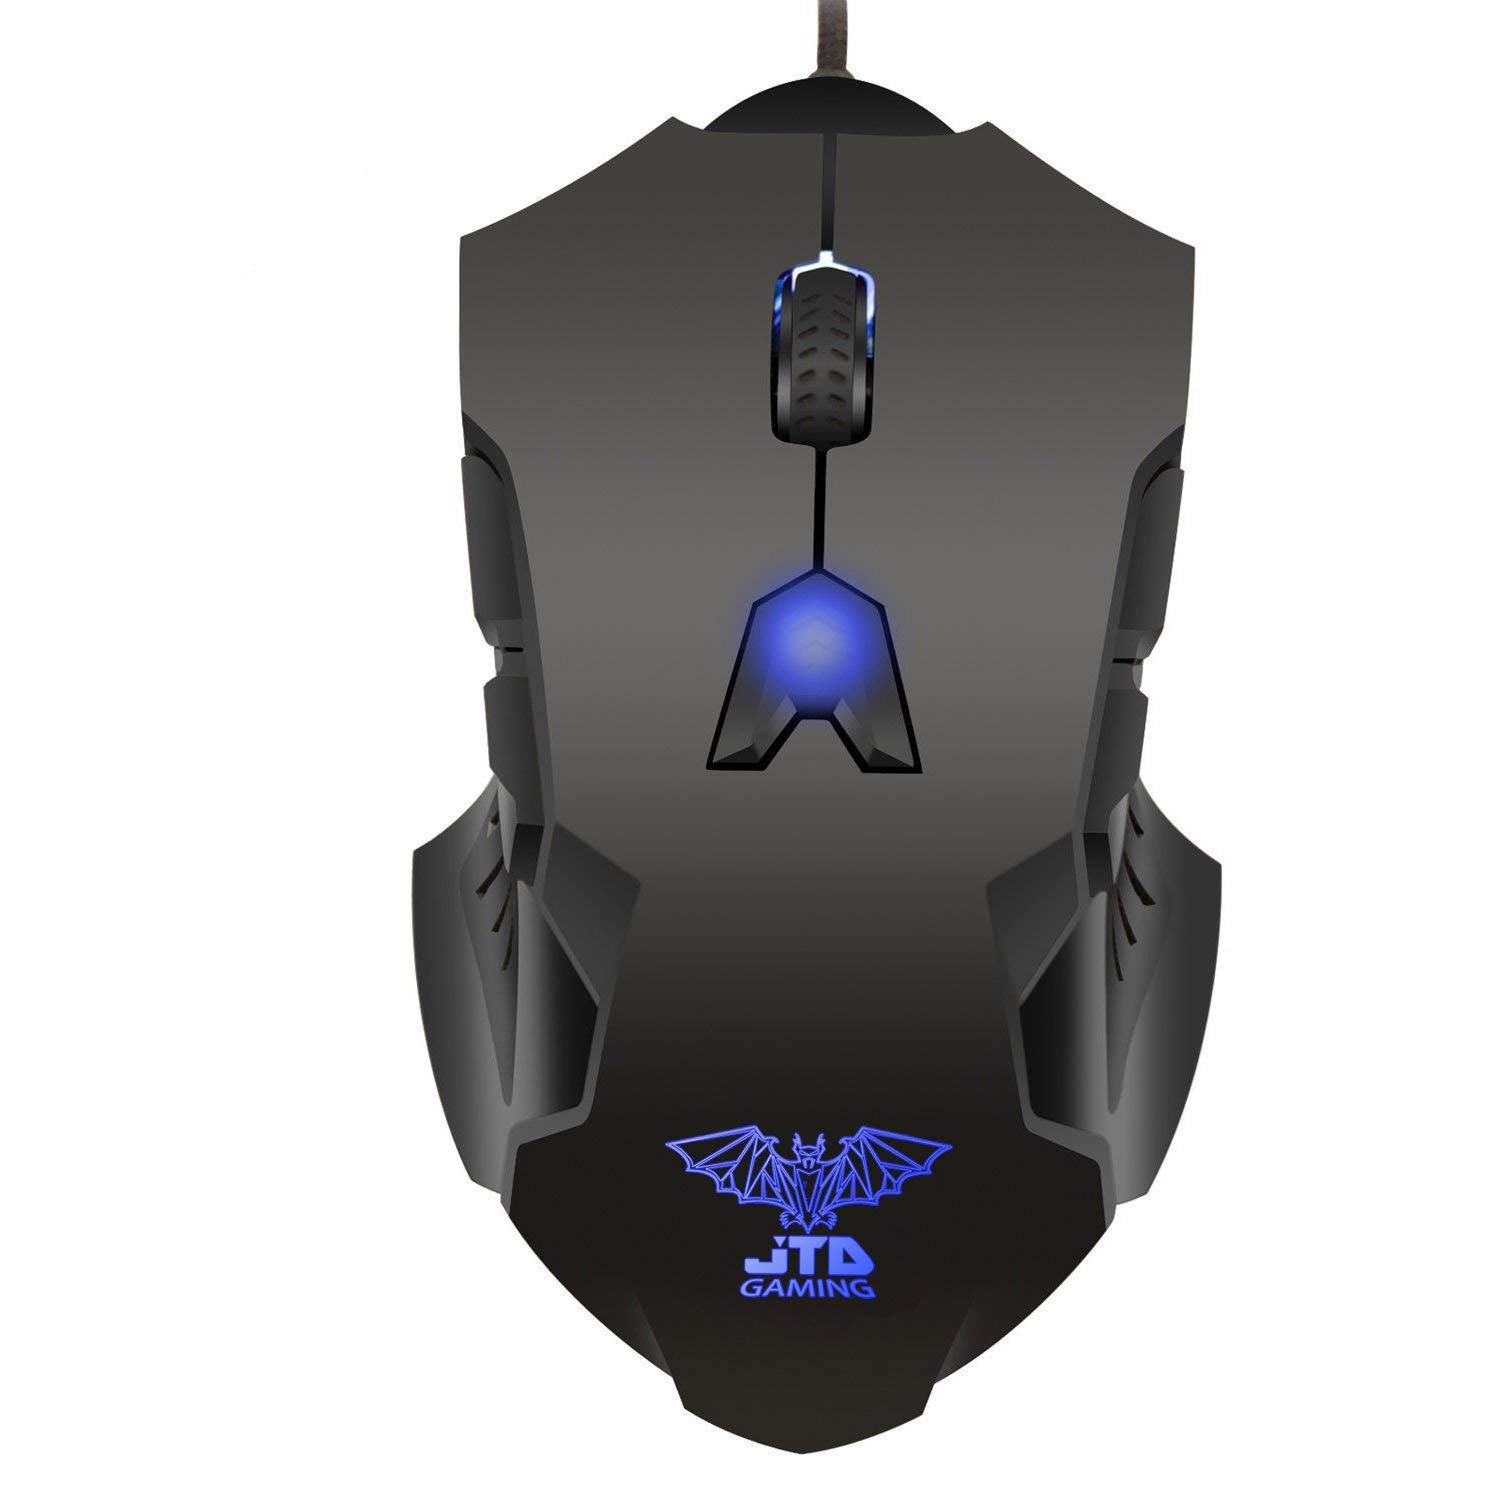 J-Tech Digital M999 Professional Gaming High Precision 200 to 8200 DPI Adjustable DPI LED Wired USB Laser Gaming Mouse for PC, 8 Programmable Buttons, 5 User Profiles, Omron Switches, Avago Sensor